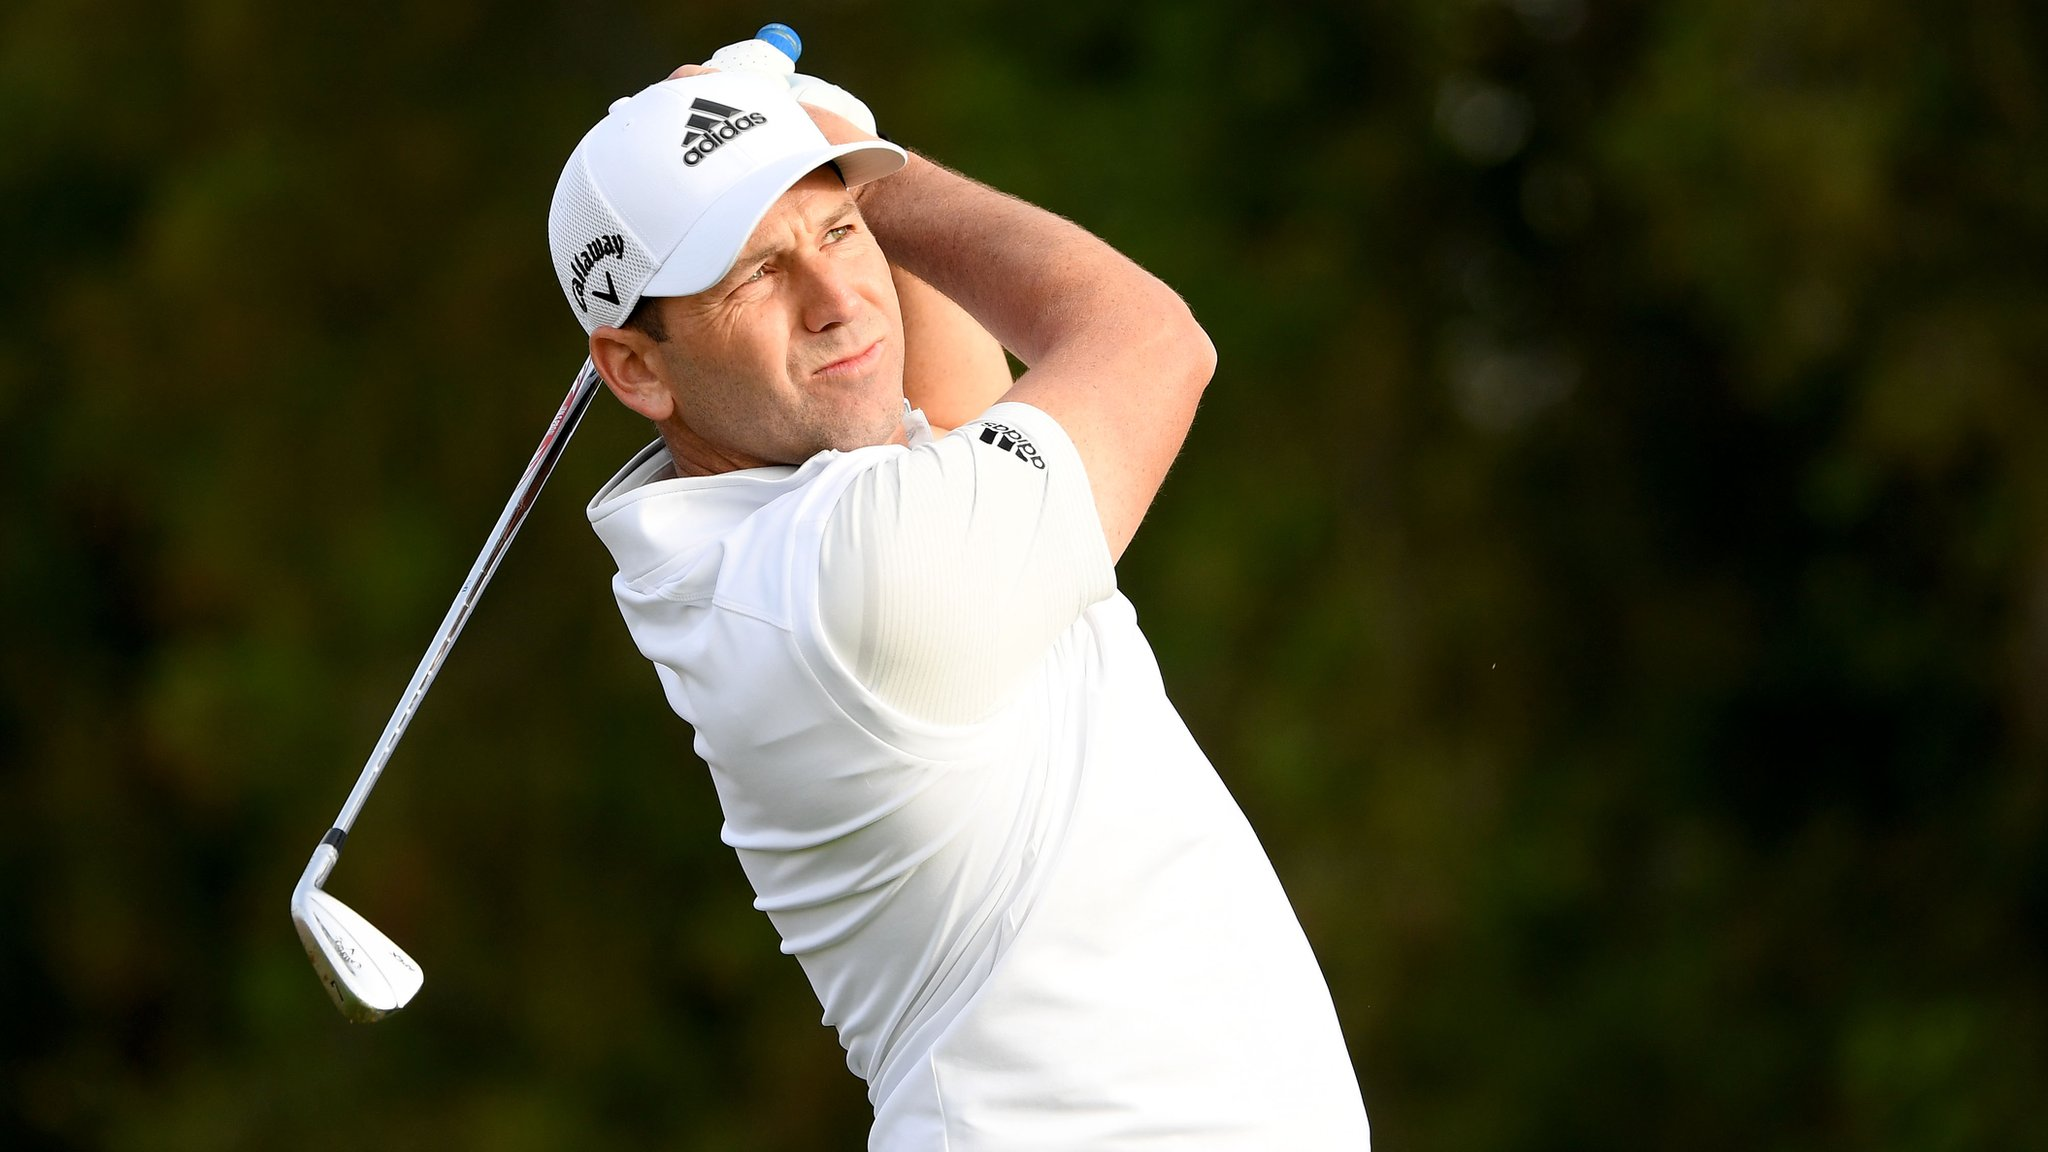 I want to learn and move forward - Sergio Garcia apologises for disqualification